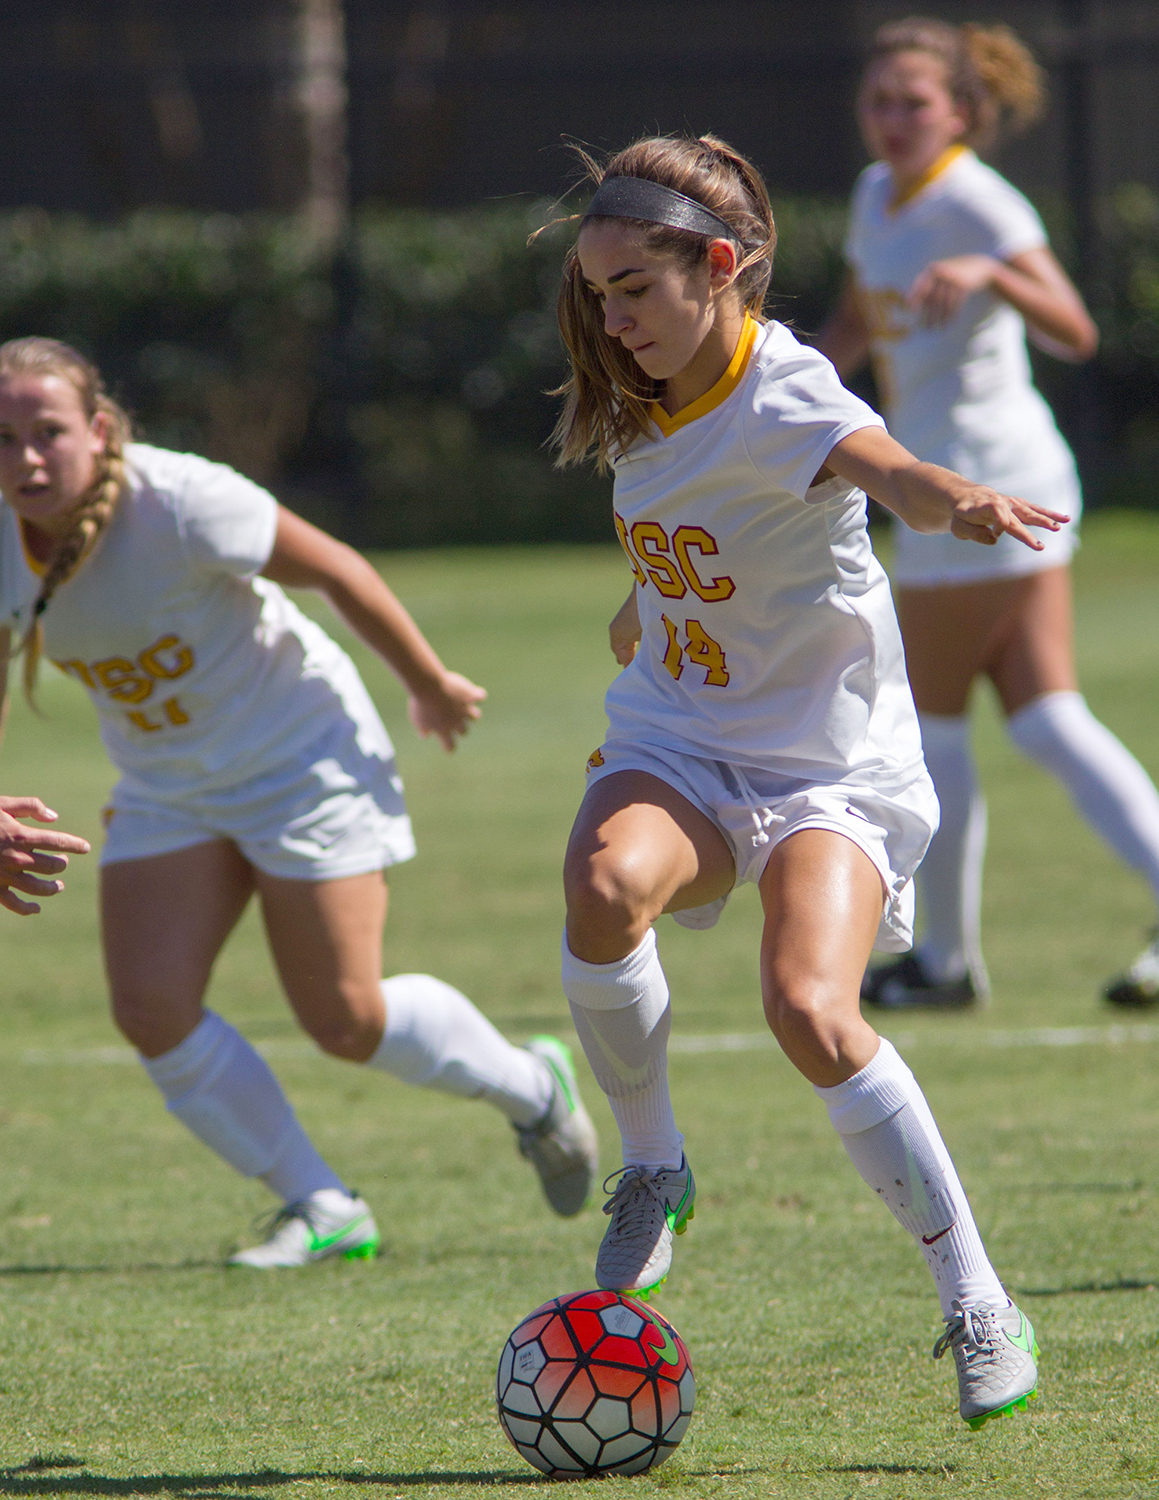 Gals and goals · The women's soccer team will be trying to find the back of the net more often in Pac-12 Conference play after totaling just 13 goals through 10 games to begin the regular season.  - Brian Ji   Daily Trojan